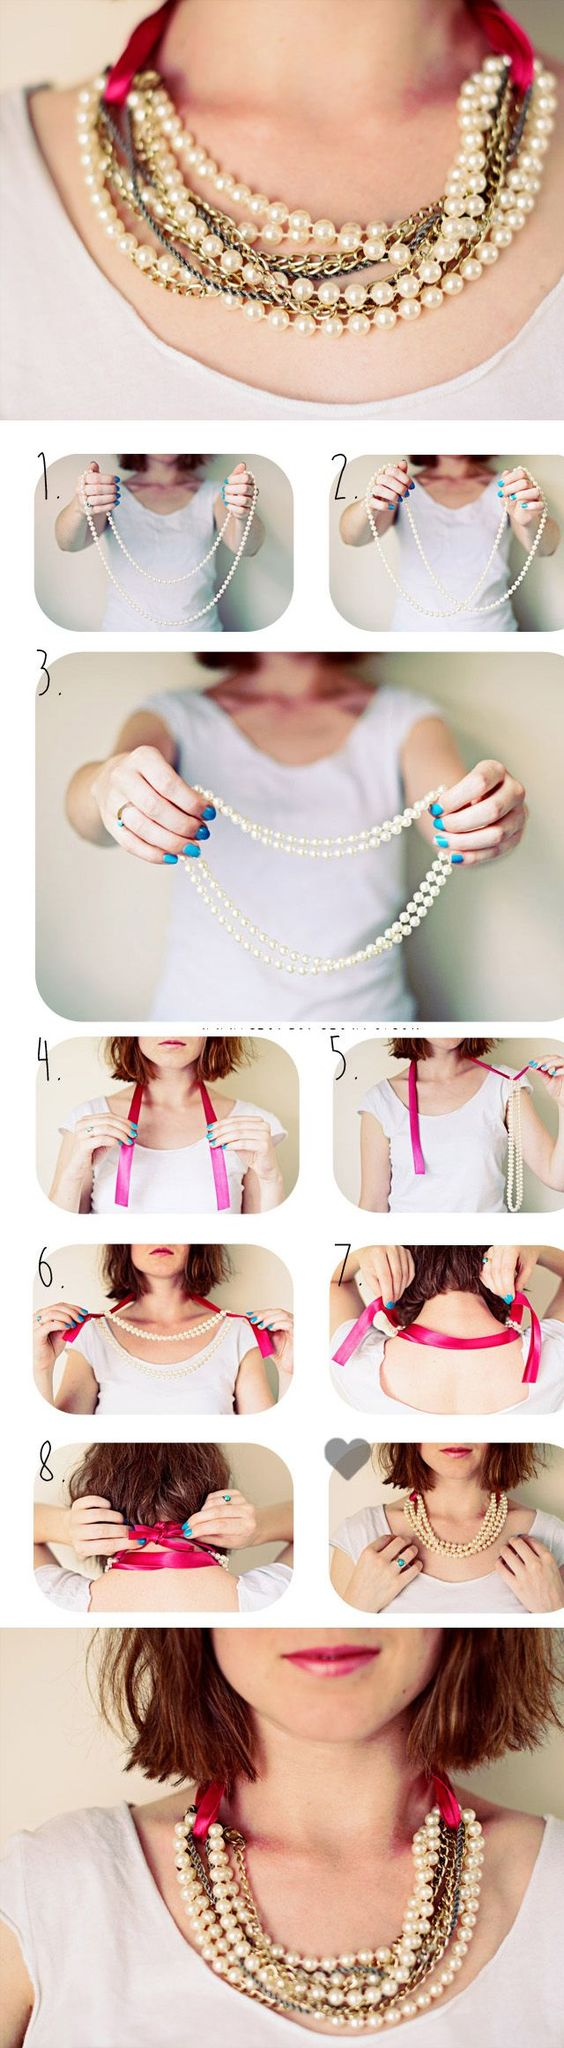 DIY Pearl Necklace In Seconds: